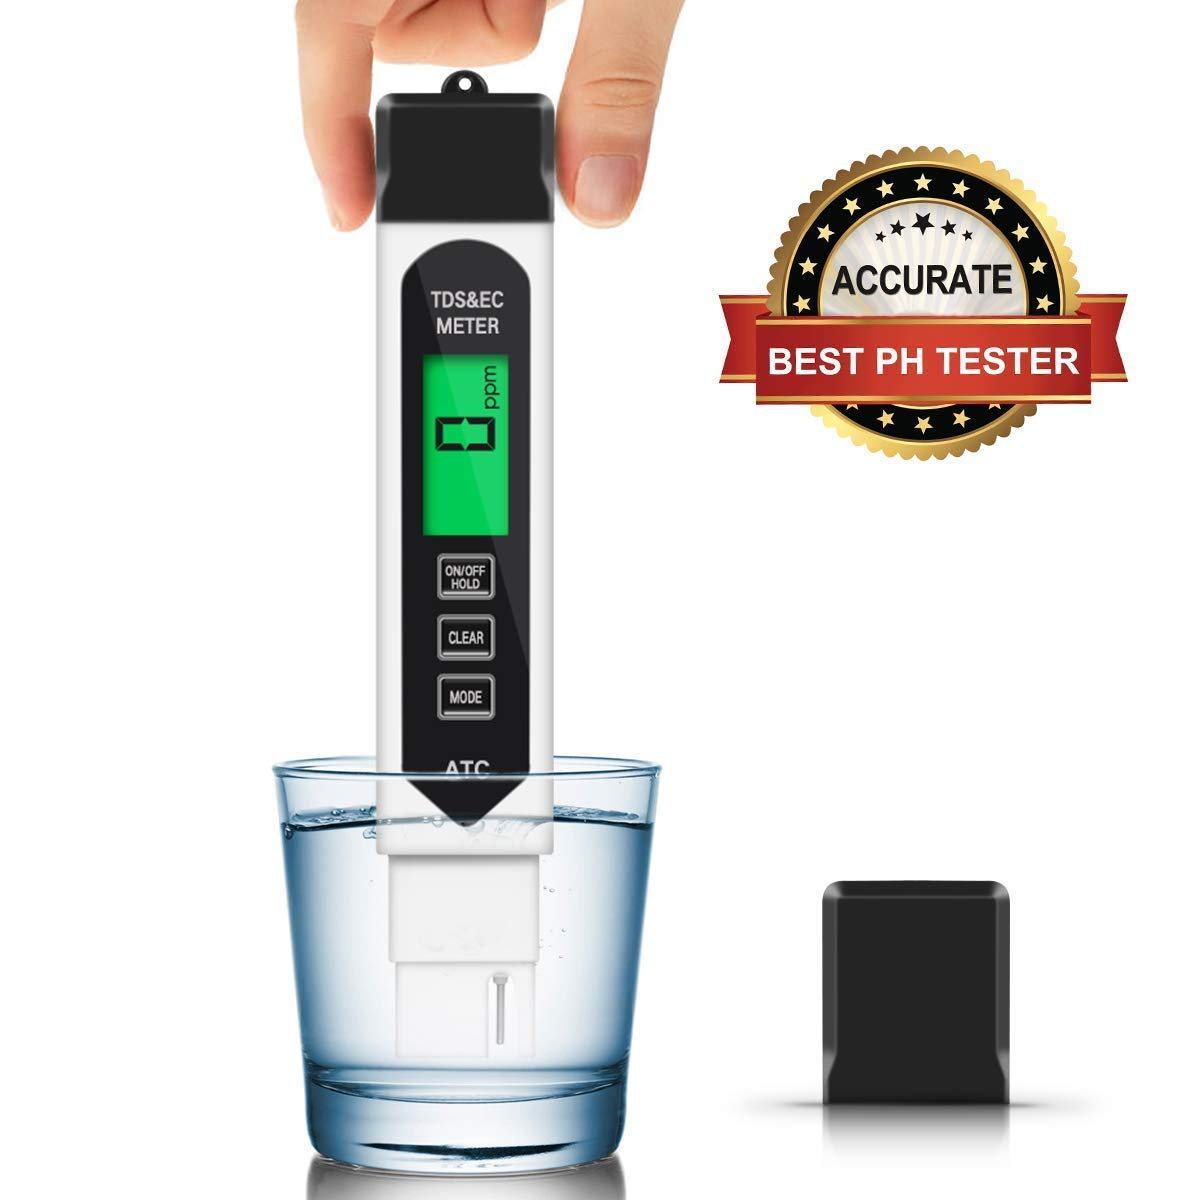 TDS Meter Digital Water Tester, 0.01 PH High Accuracy Water Quality Tester, 0-9999 ppm Meter, Ideal ppm Meter for Drinking Water, Pool and Aquarium Water PH Tester Design and More by JYeva